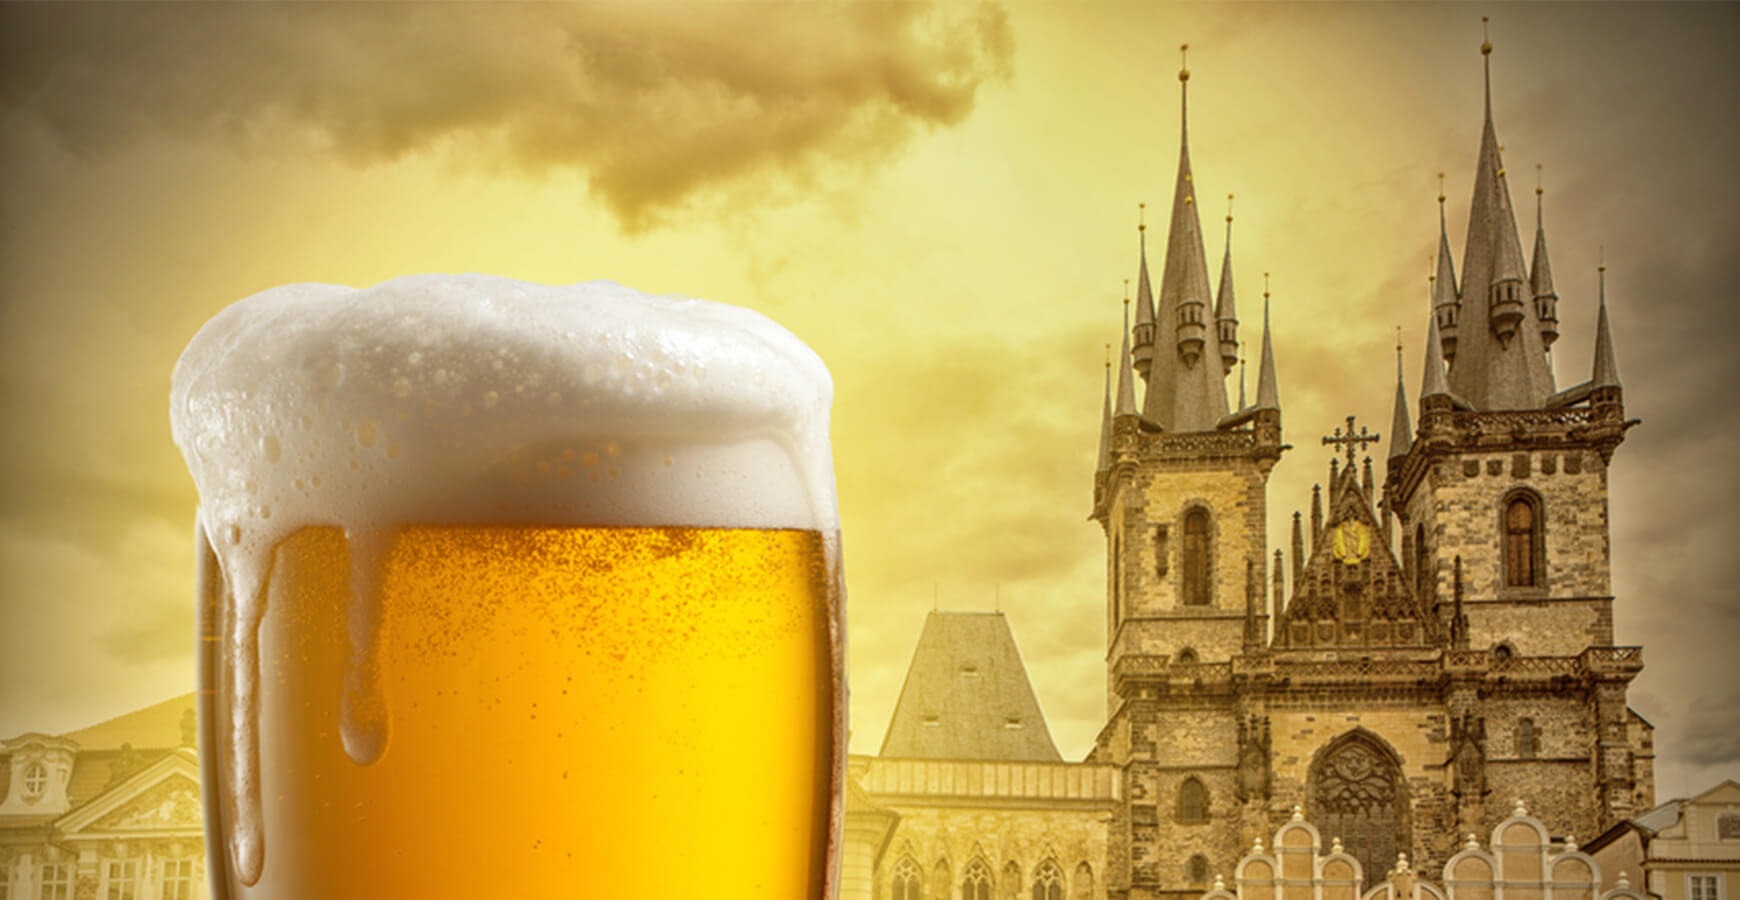 Bier in Prag – eine lange Tradition